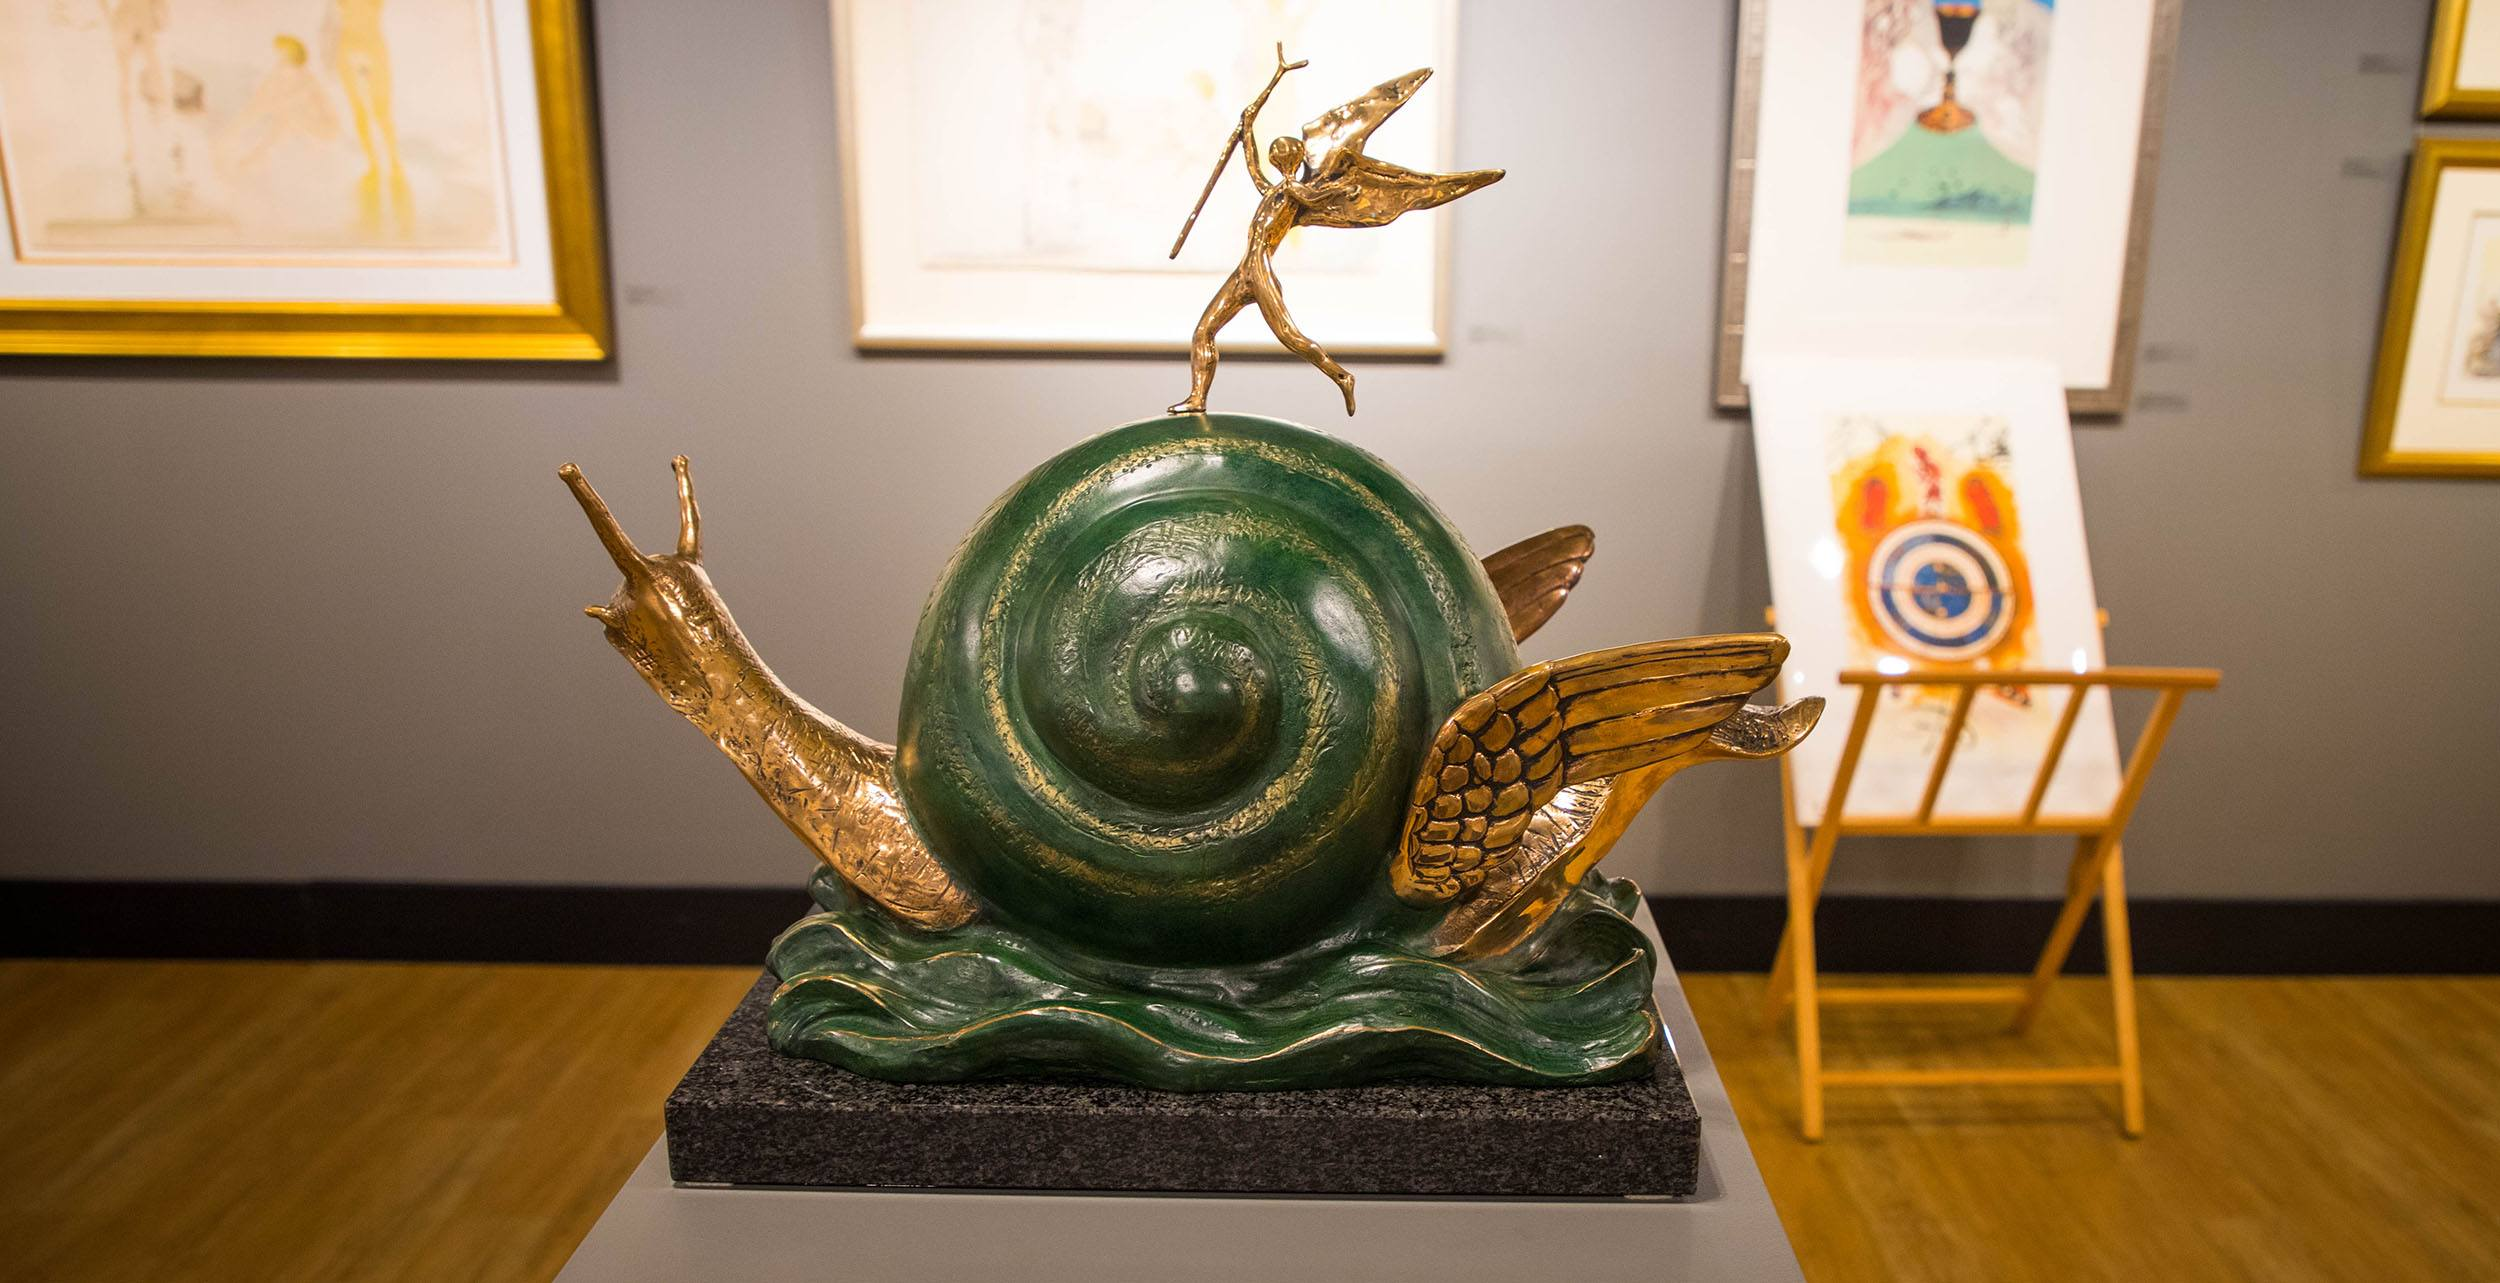 The Snail and the Angel sculpture by Salvador Dalí (Jenni Sheppard/Daily Hive)